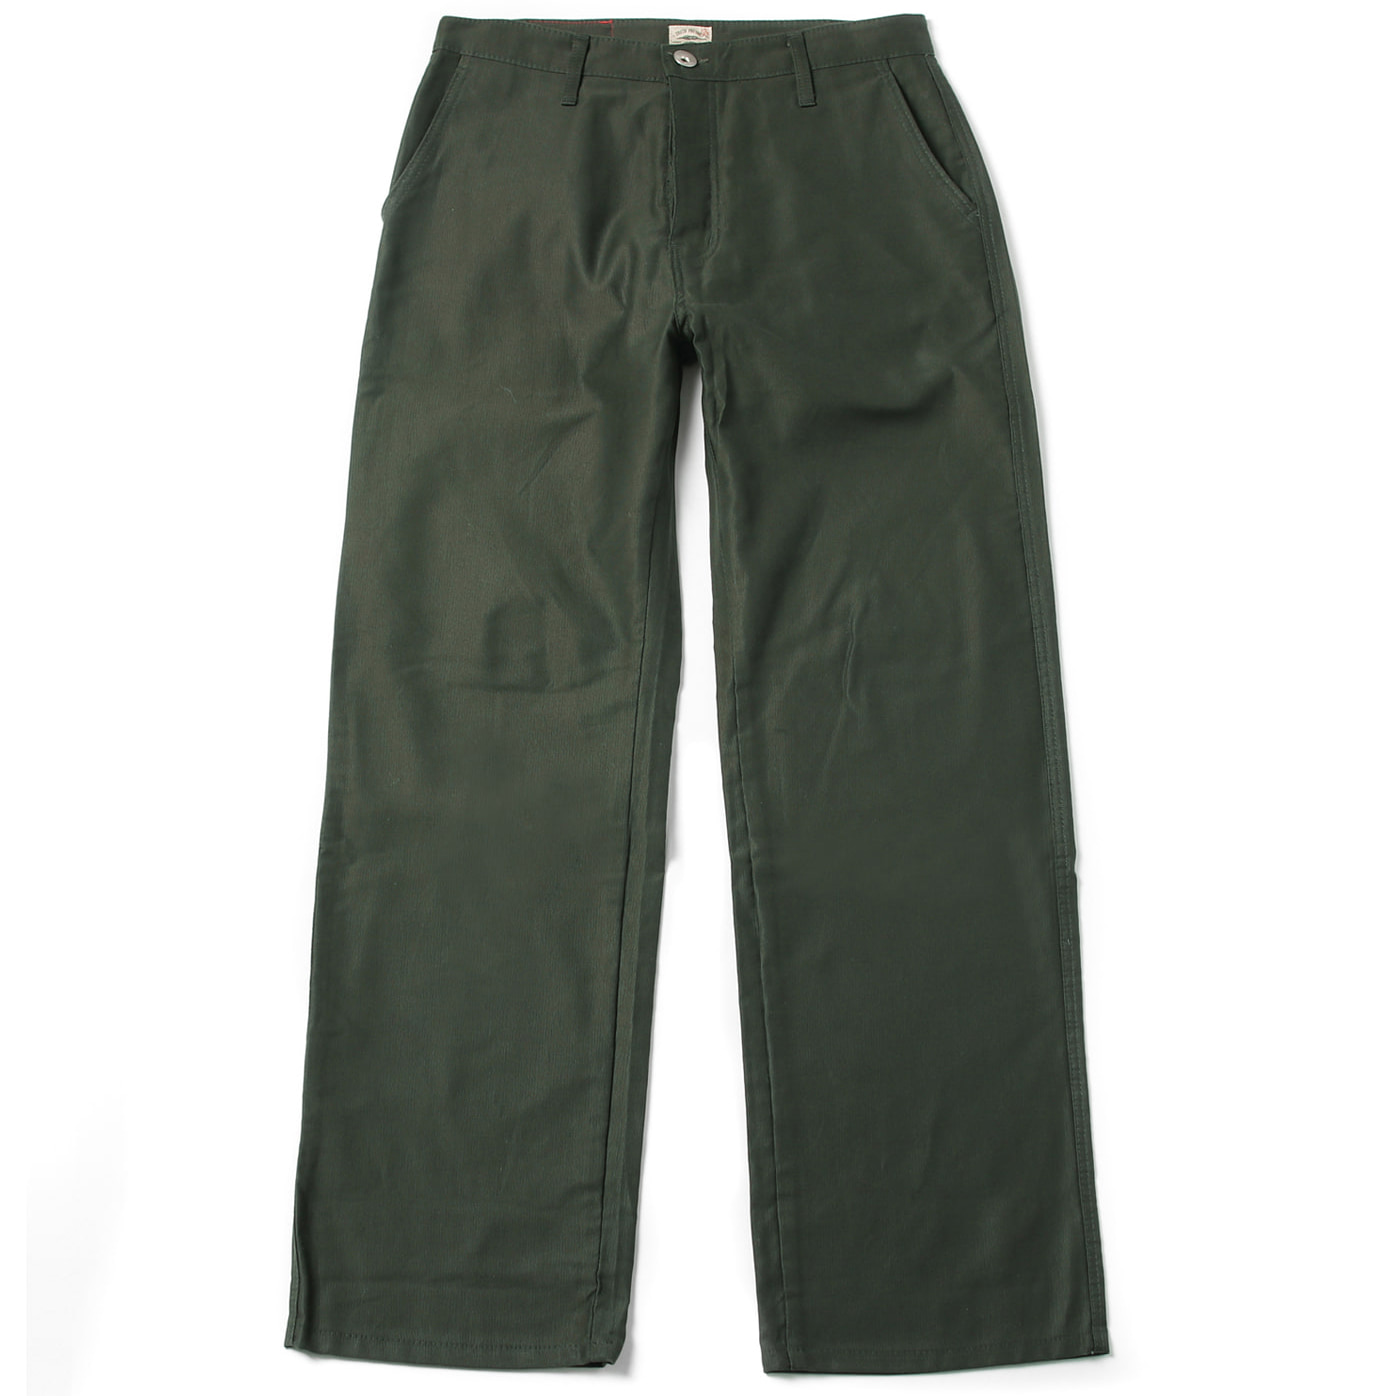 [콘보이] Jungle cloth work pants khaki